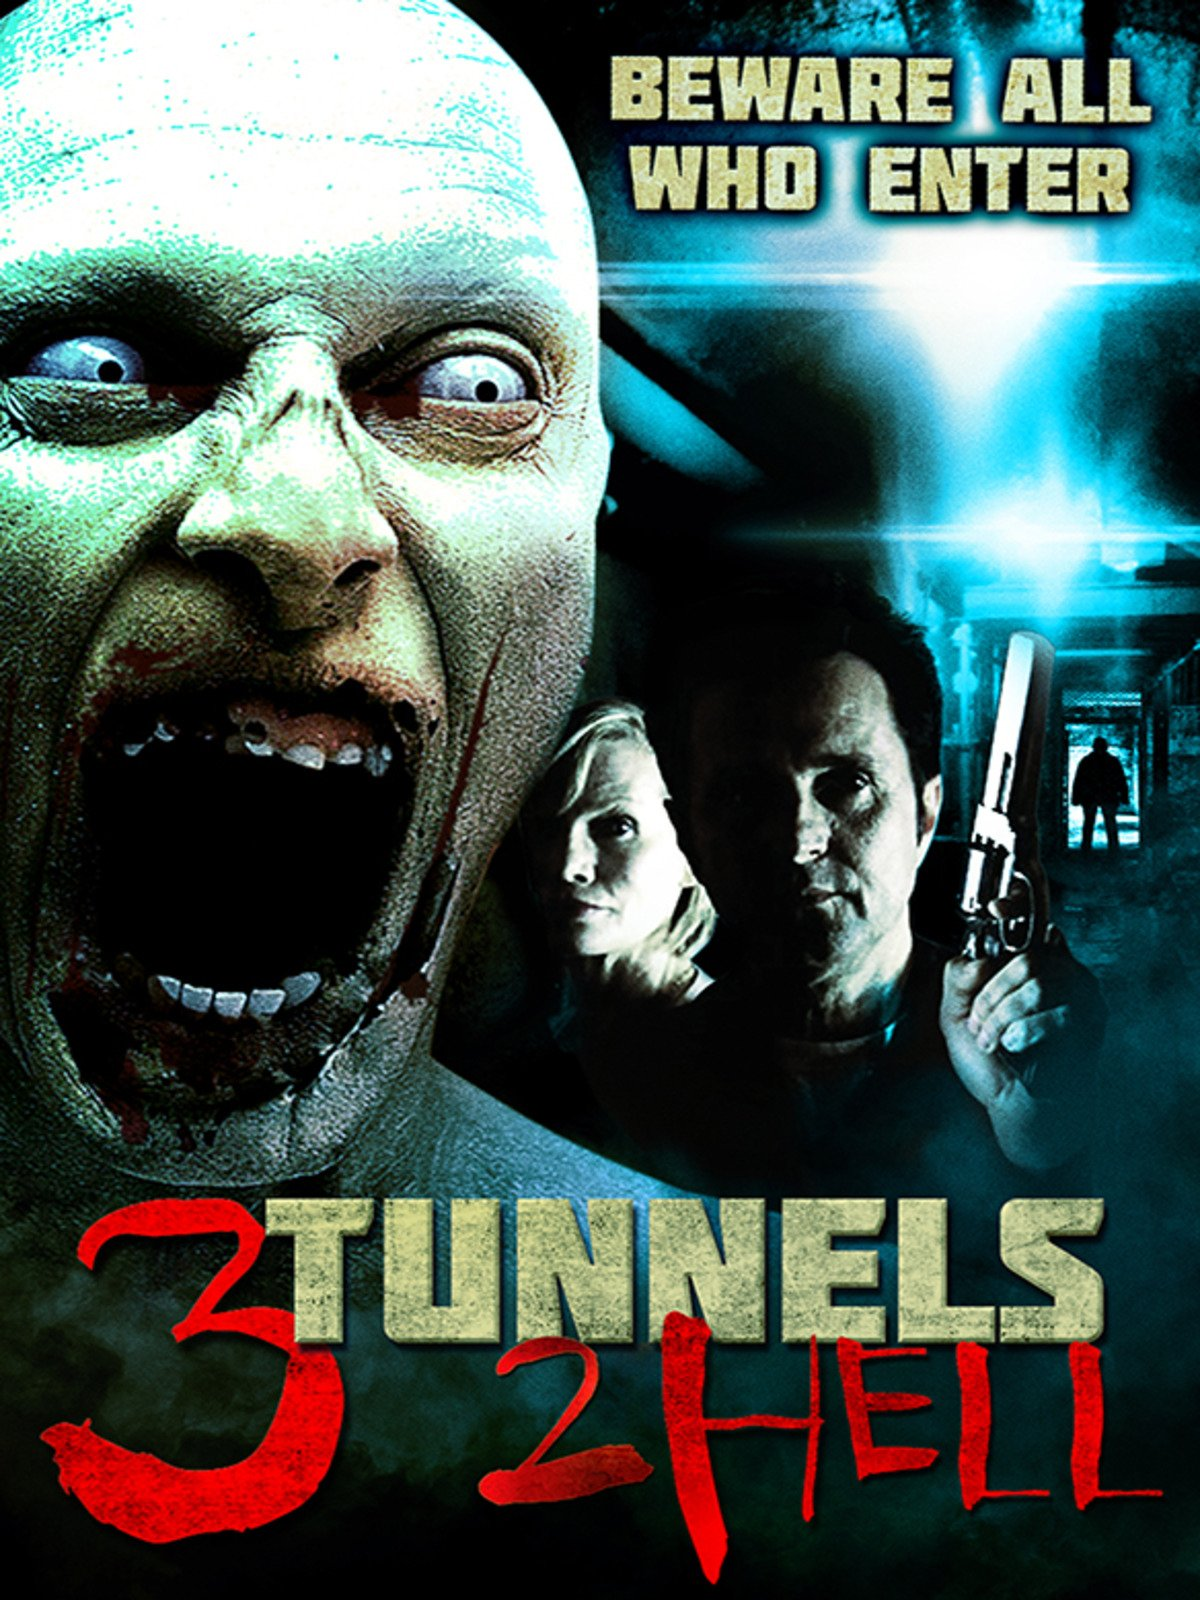 3 Tunnels 2 Hell on Amazon Prime Instant Video UK